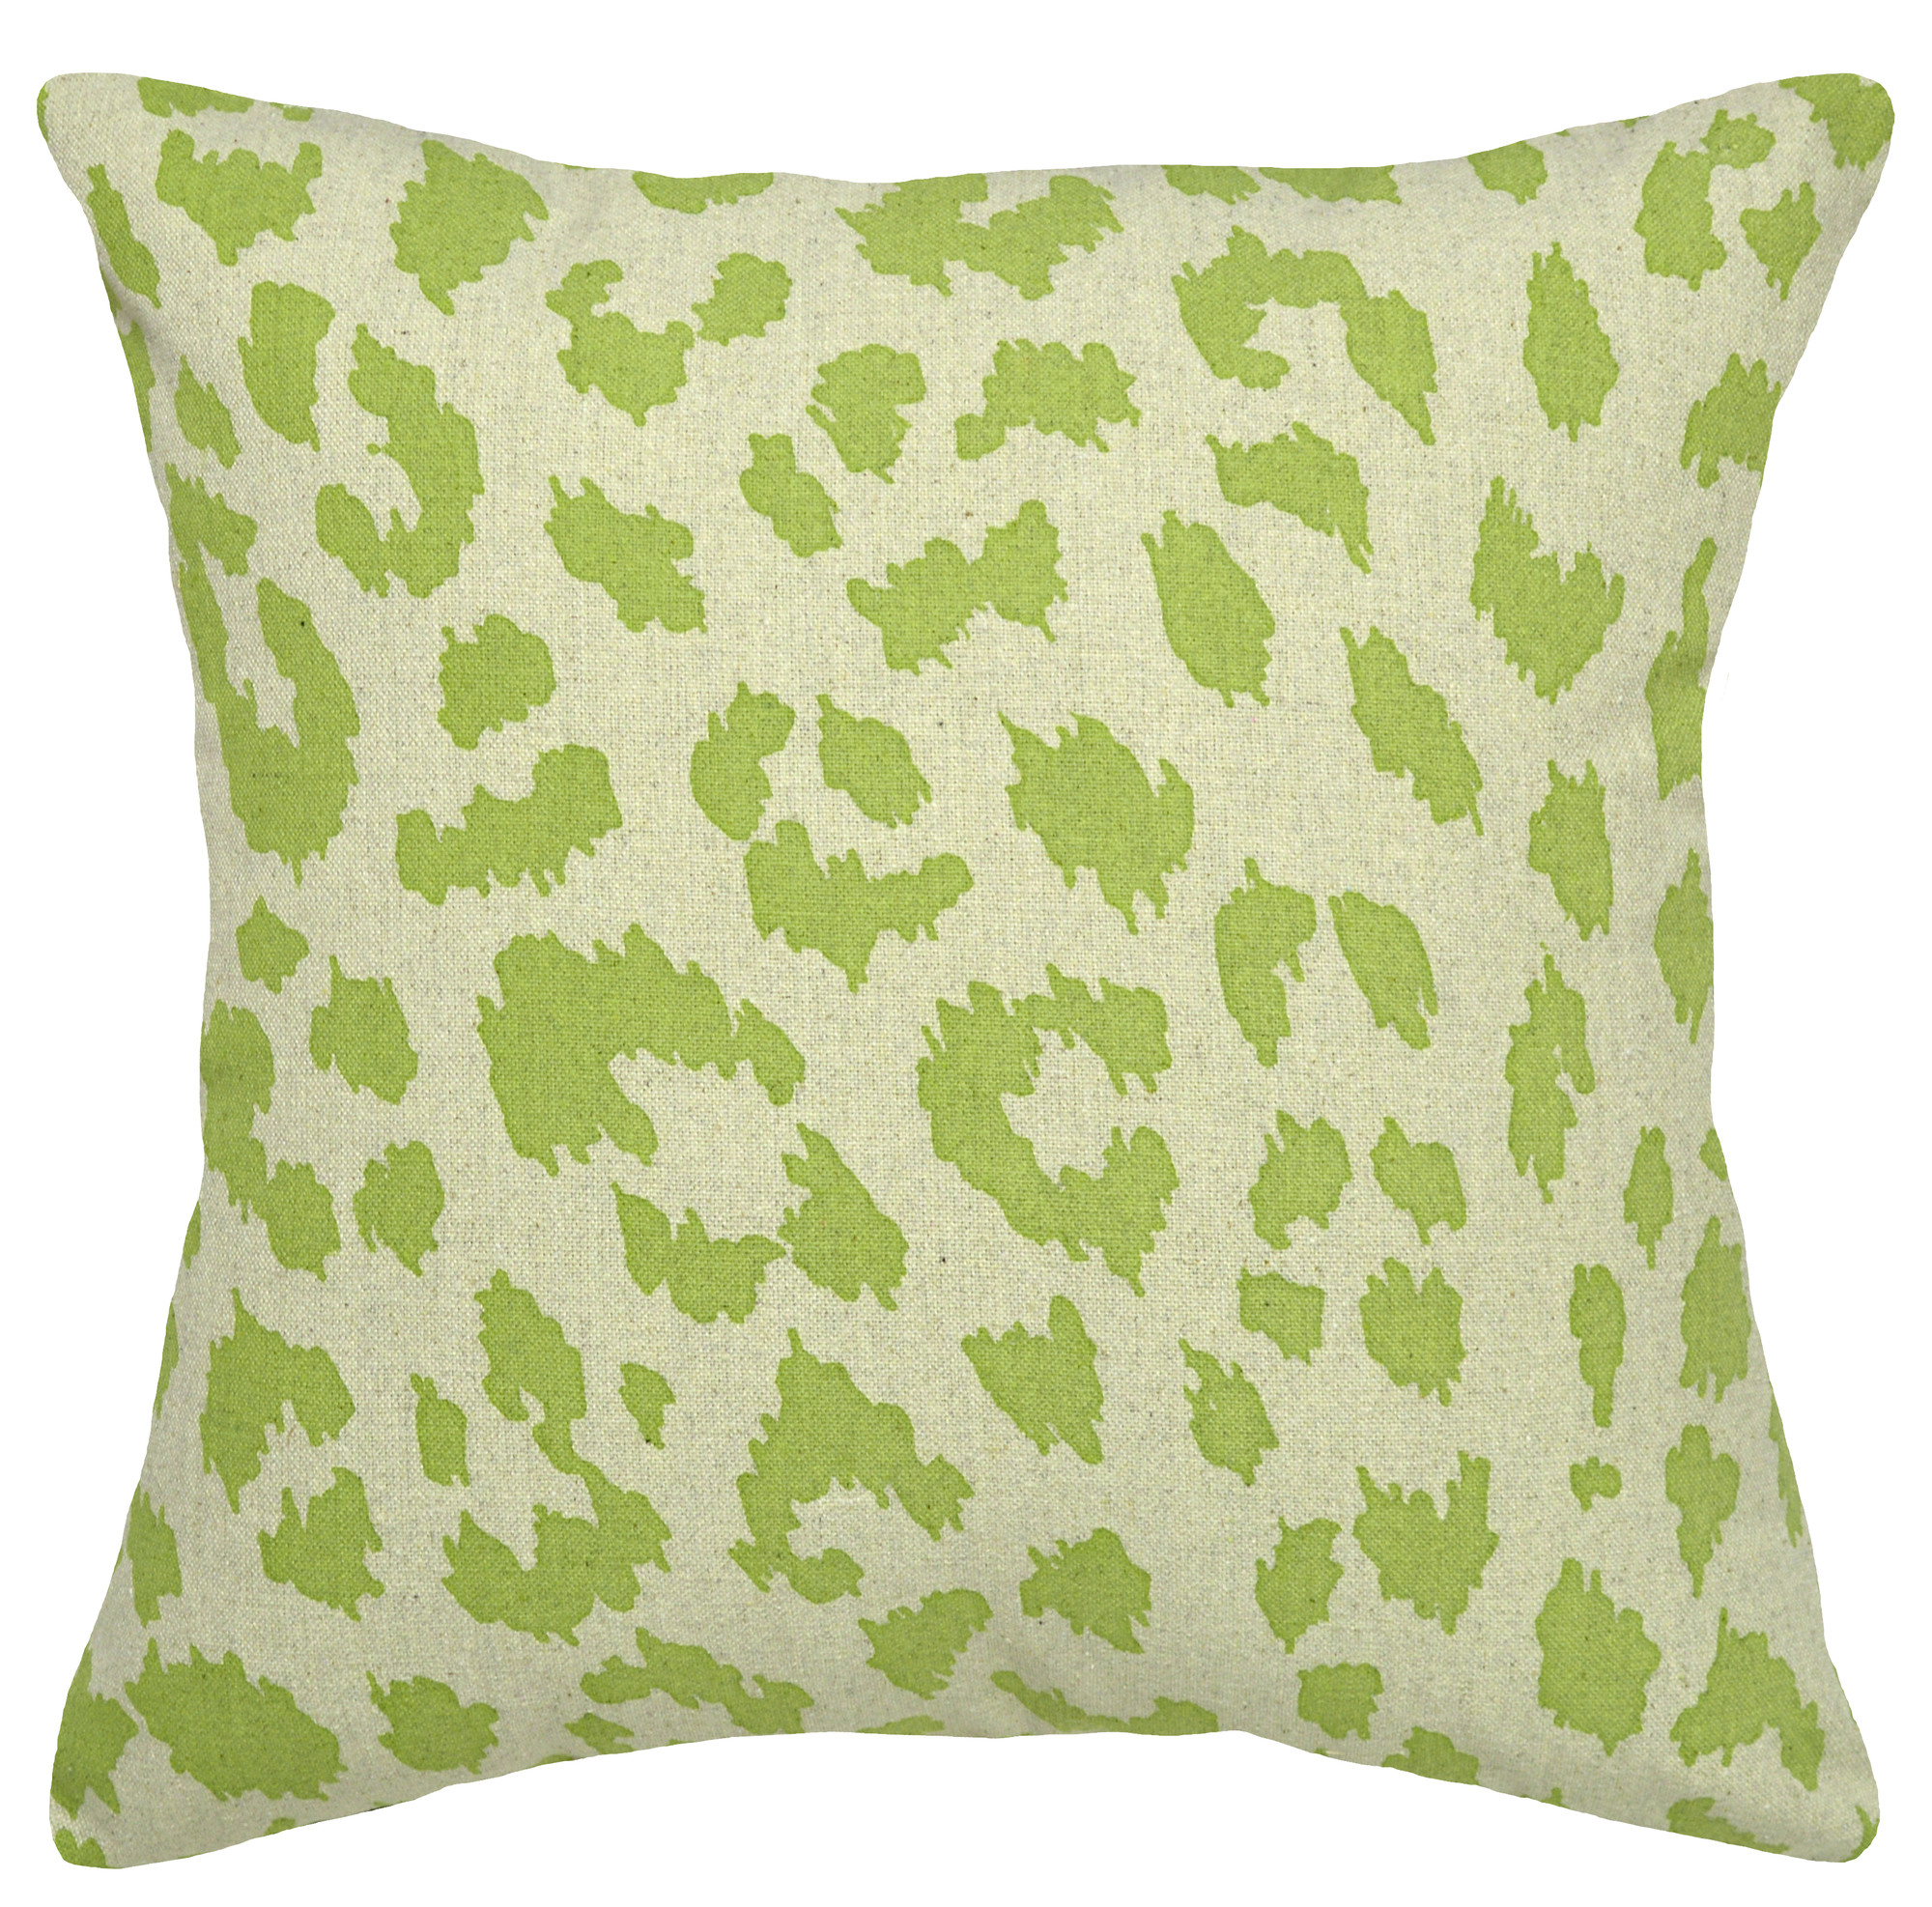 123 Creations Animal Print Green Cheetah 100% Linen Pillow